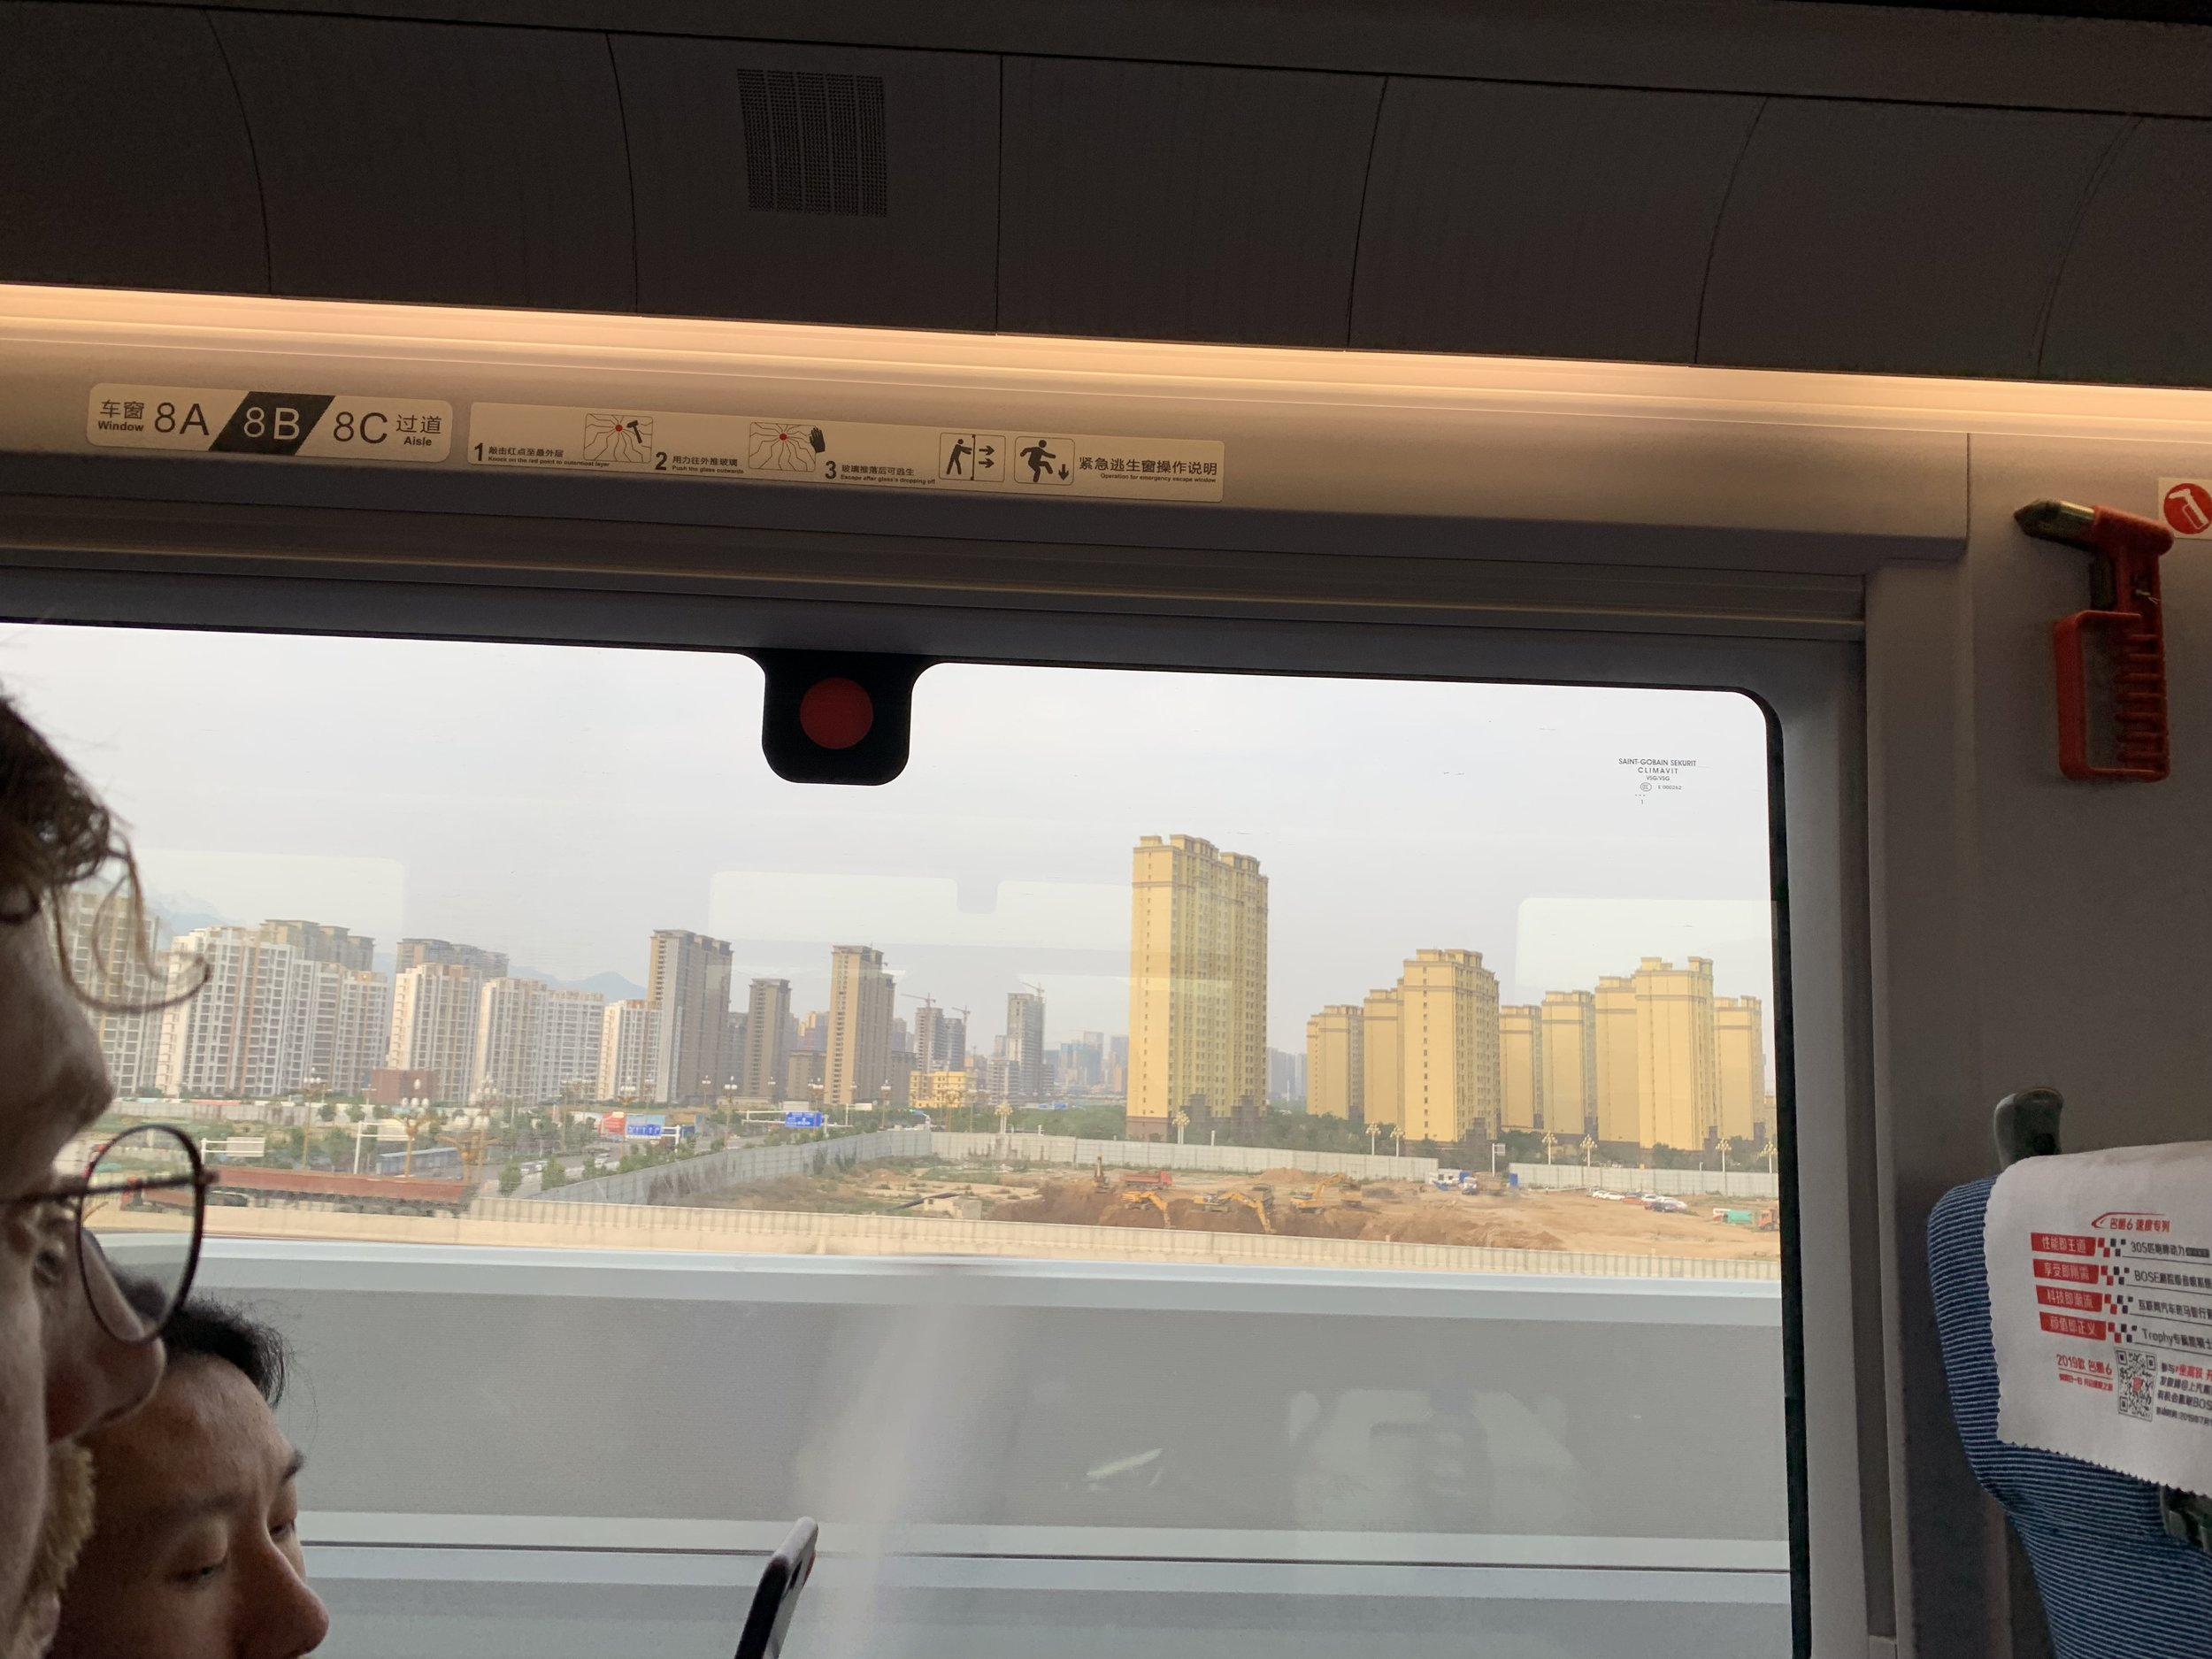 On the bullet train from Beijing to Yiwu